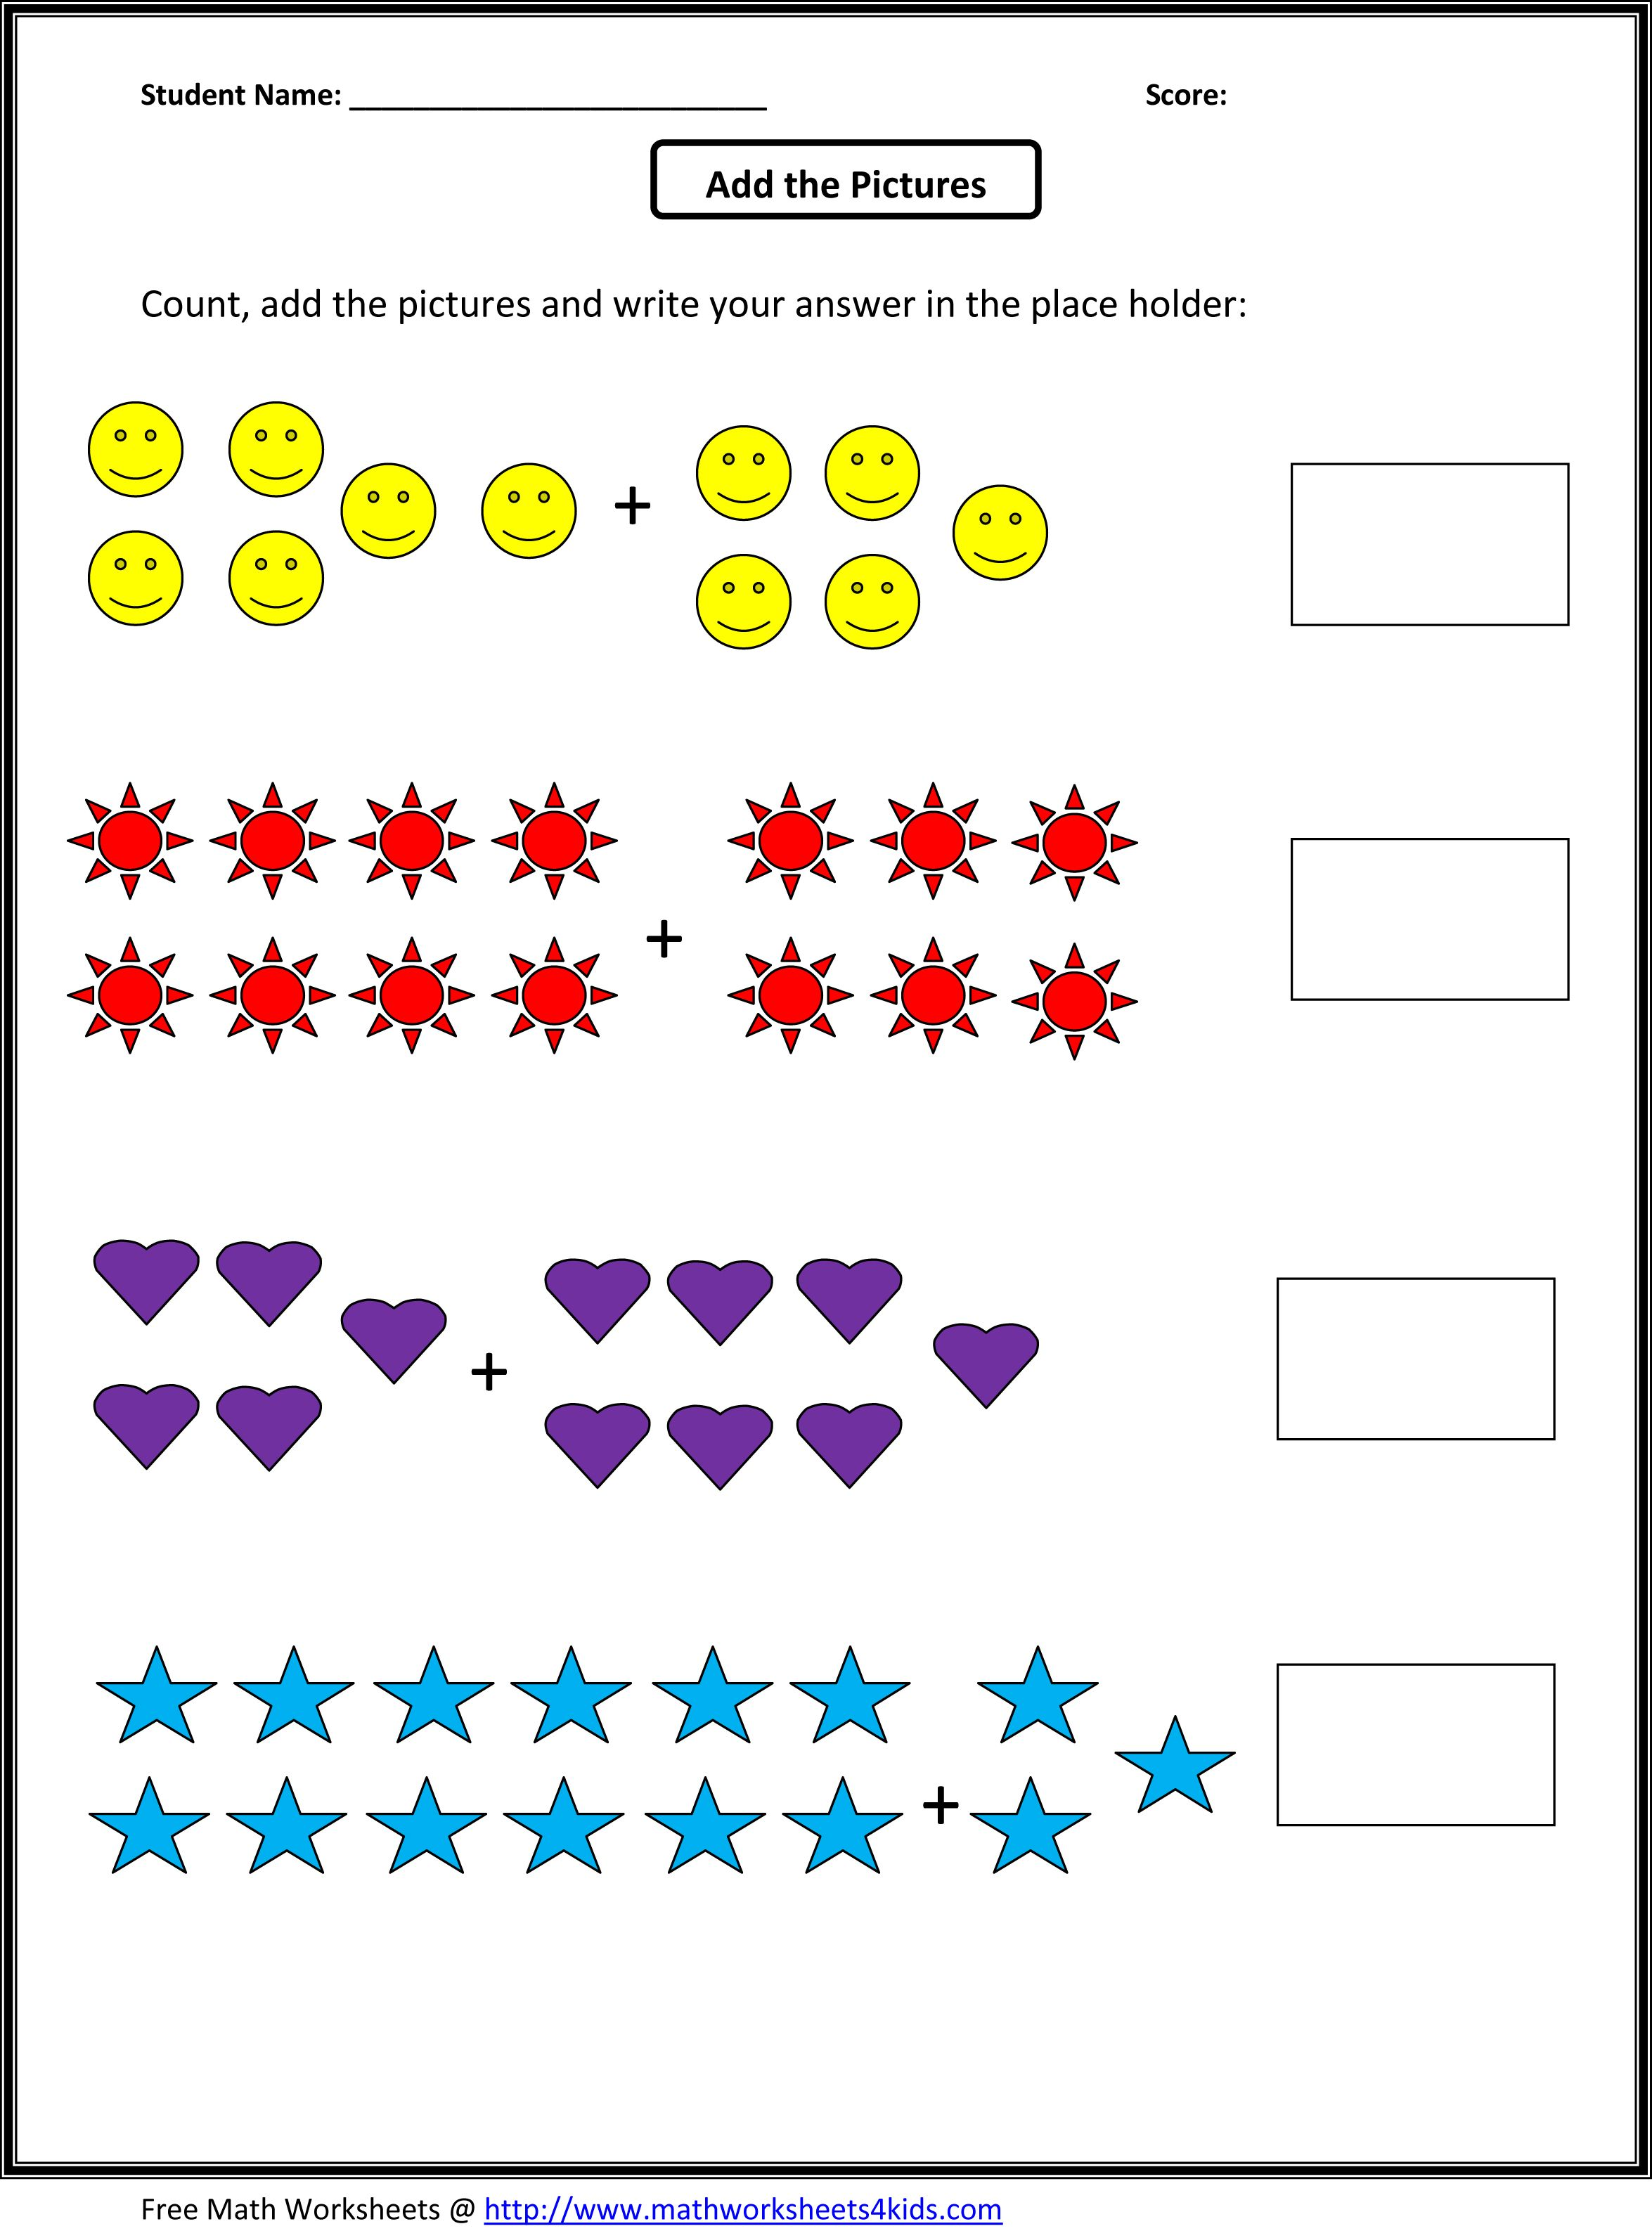 Grade 1 Addition Math Worksheets First Grade Math Worksheets